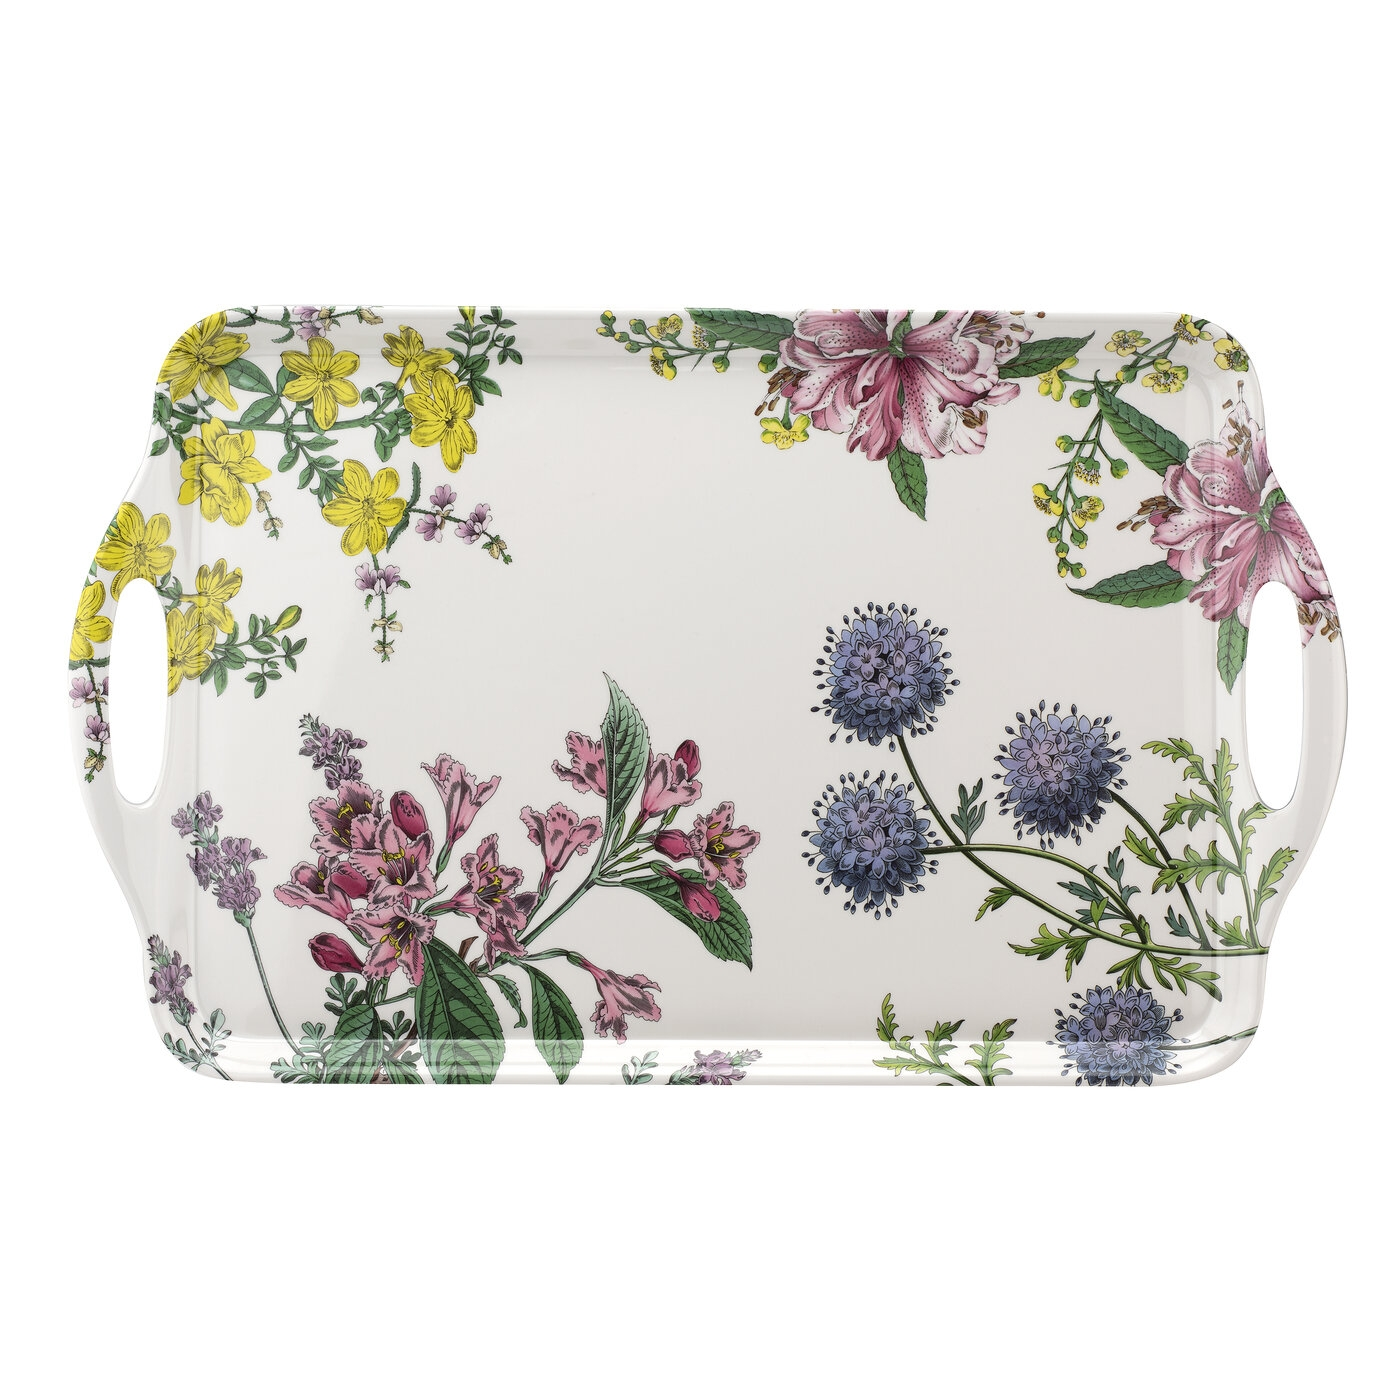 Pimpernel Stafford Blooms Large Melamine Handled Tray image number 0